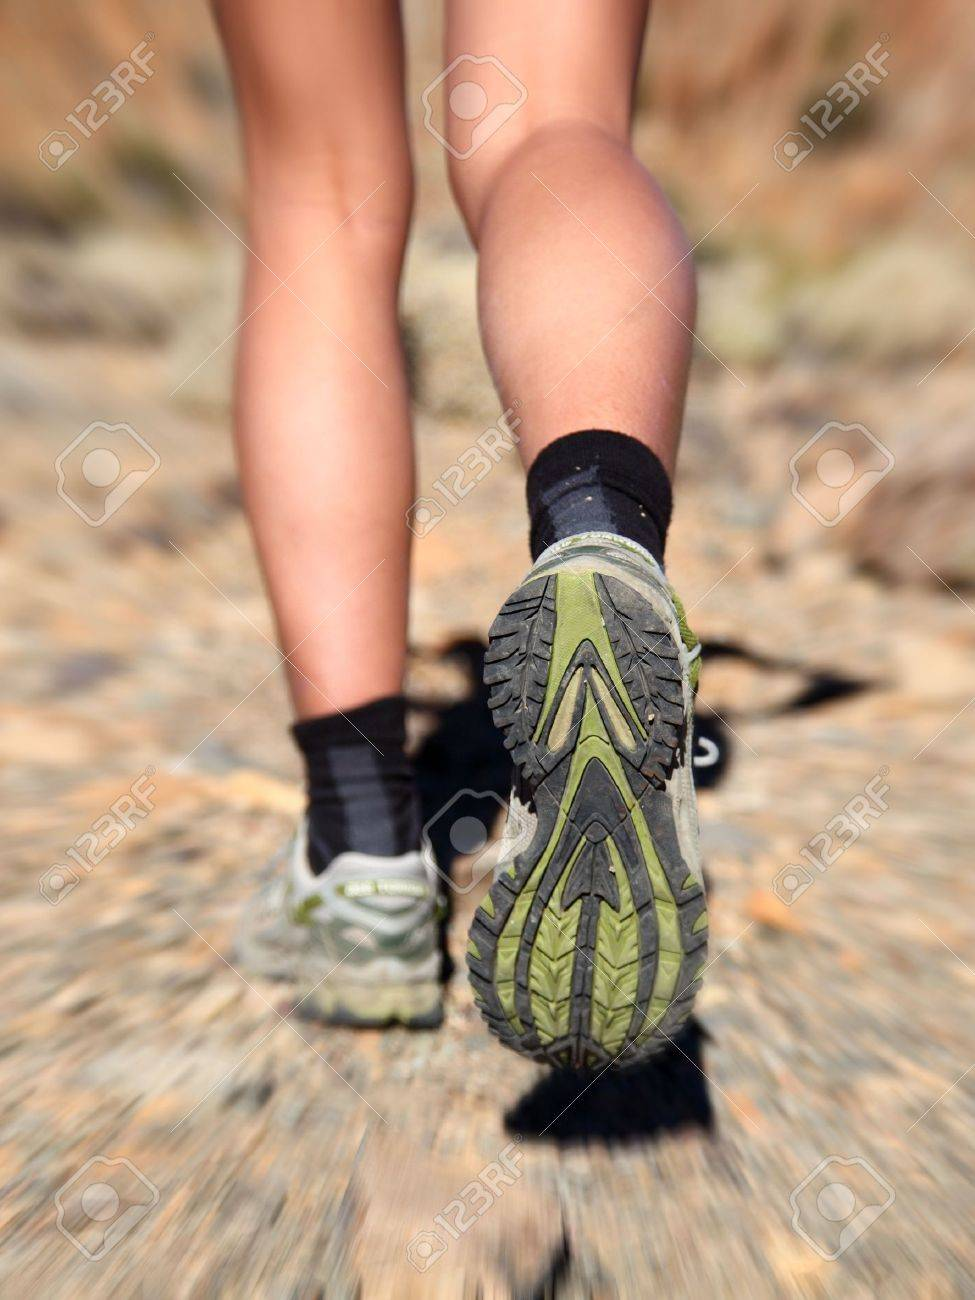 Woman running on trail in desert. Zoom motion blurred closeup shoes of woman trail running in desert. Stock Photo - 6825828